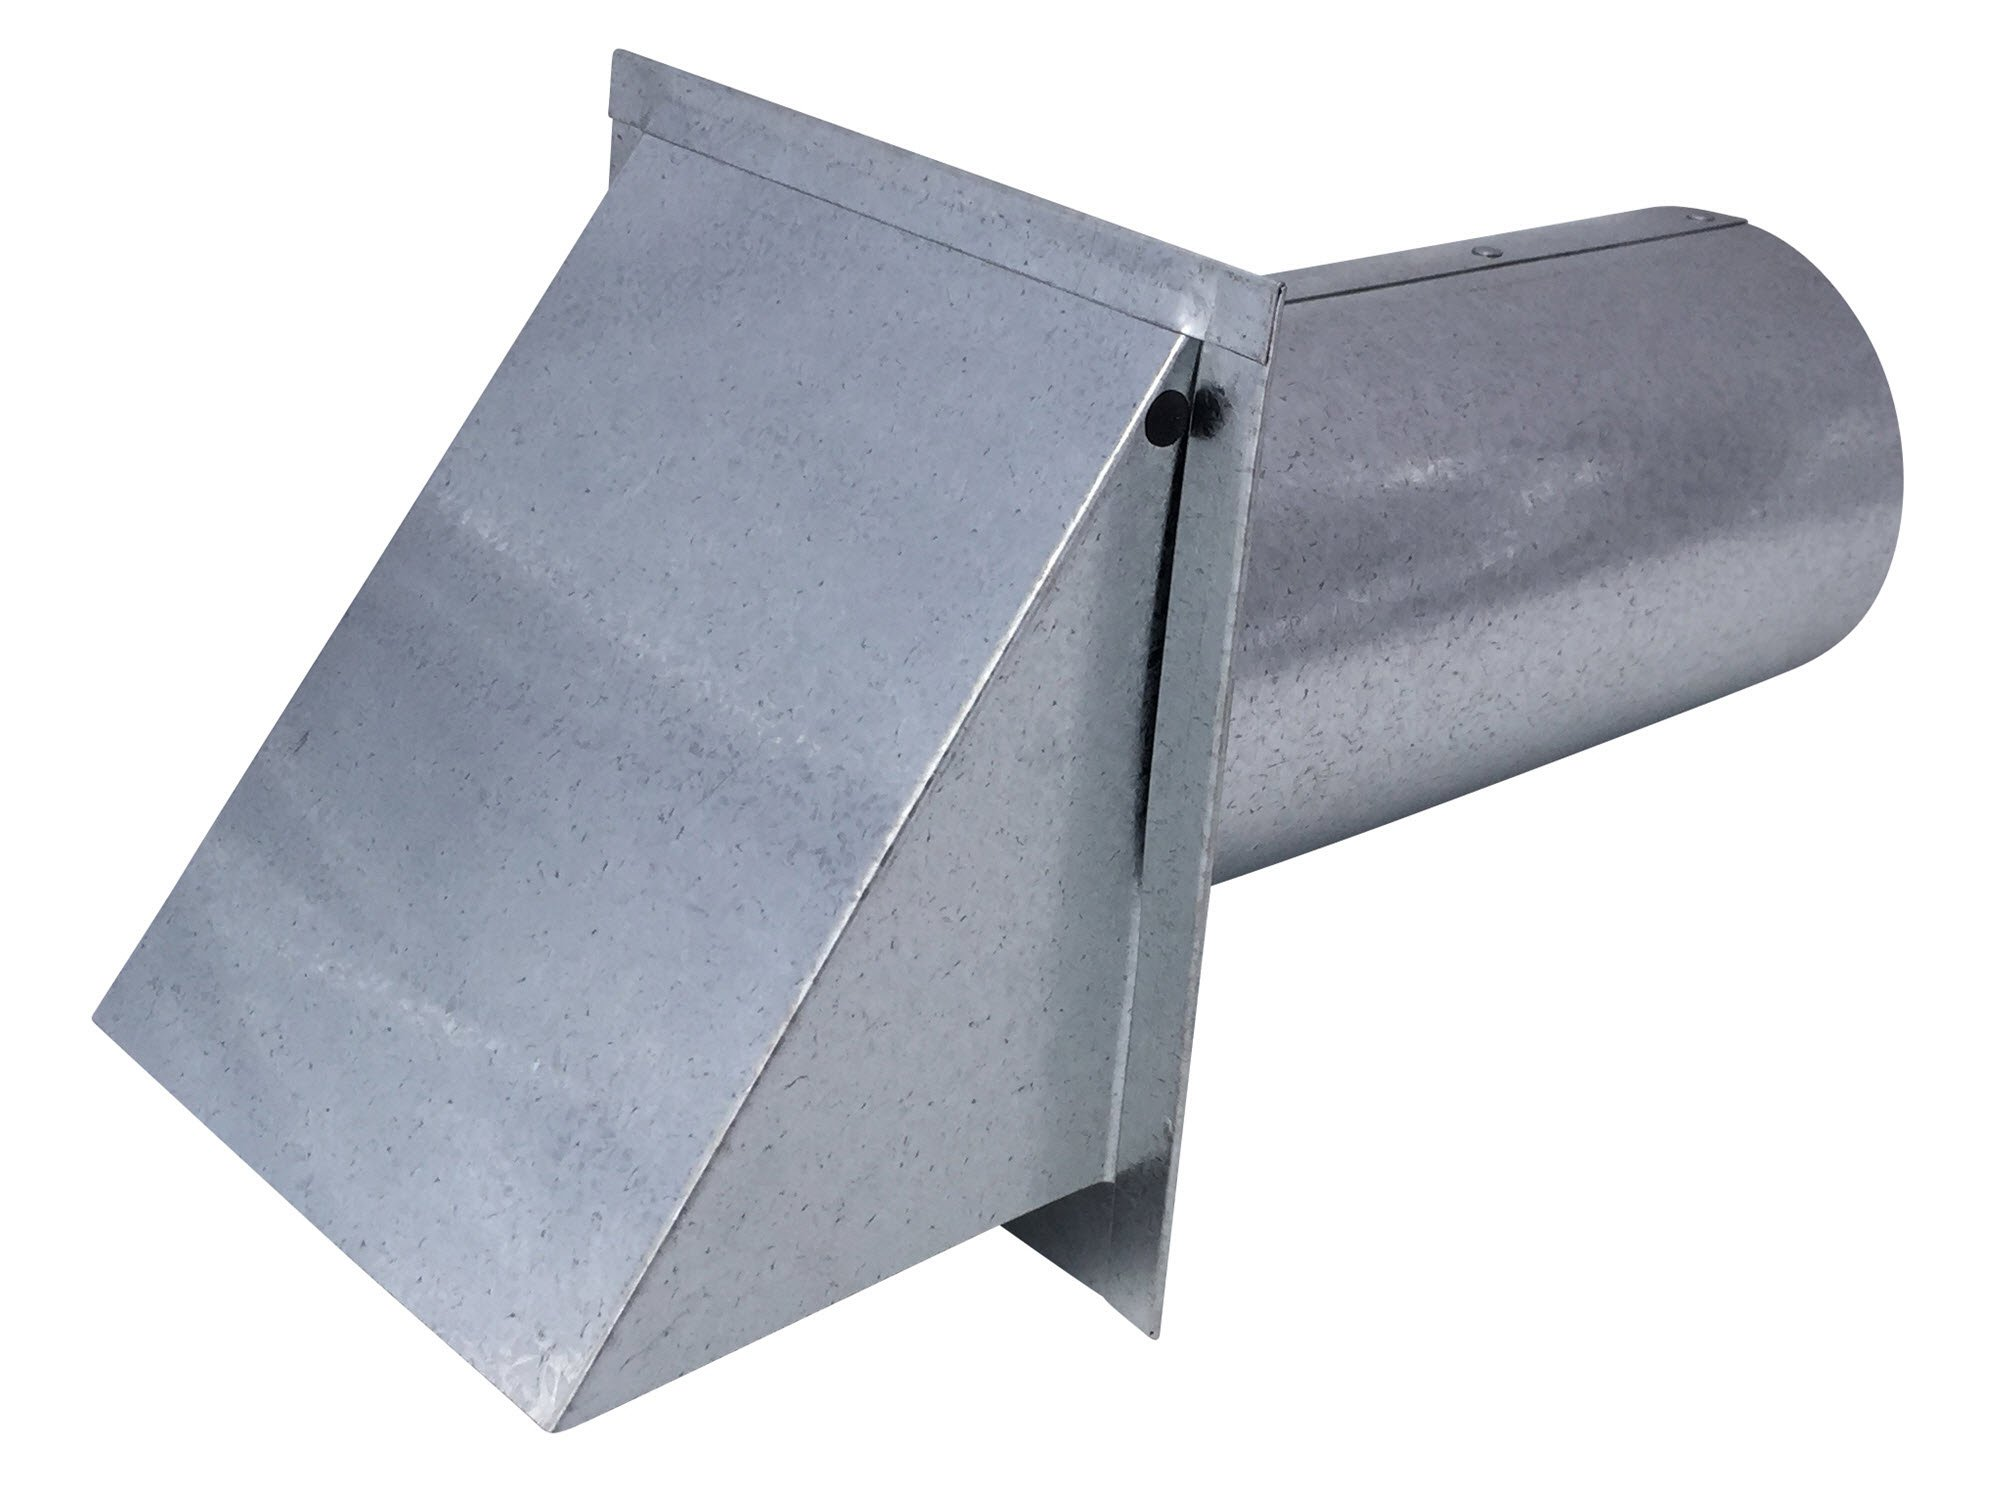 5 Inch Wall Vent Galvanized Screen Only (5 Inch diameter) - Vent Works